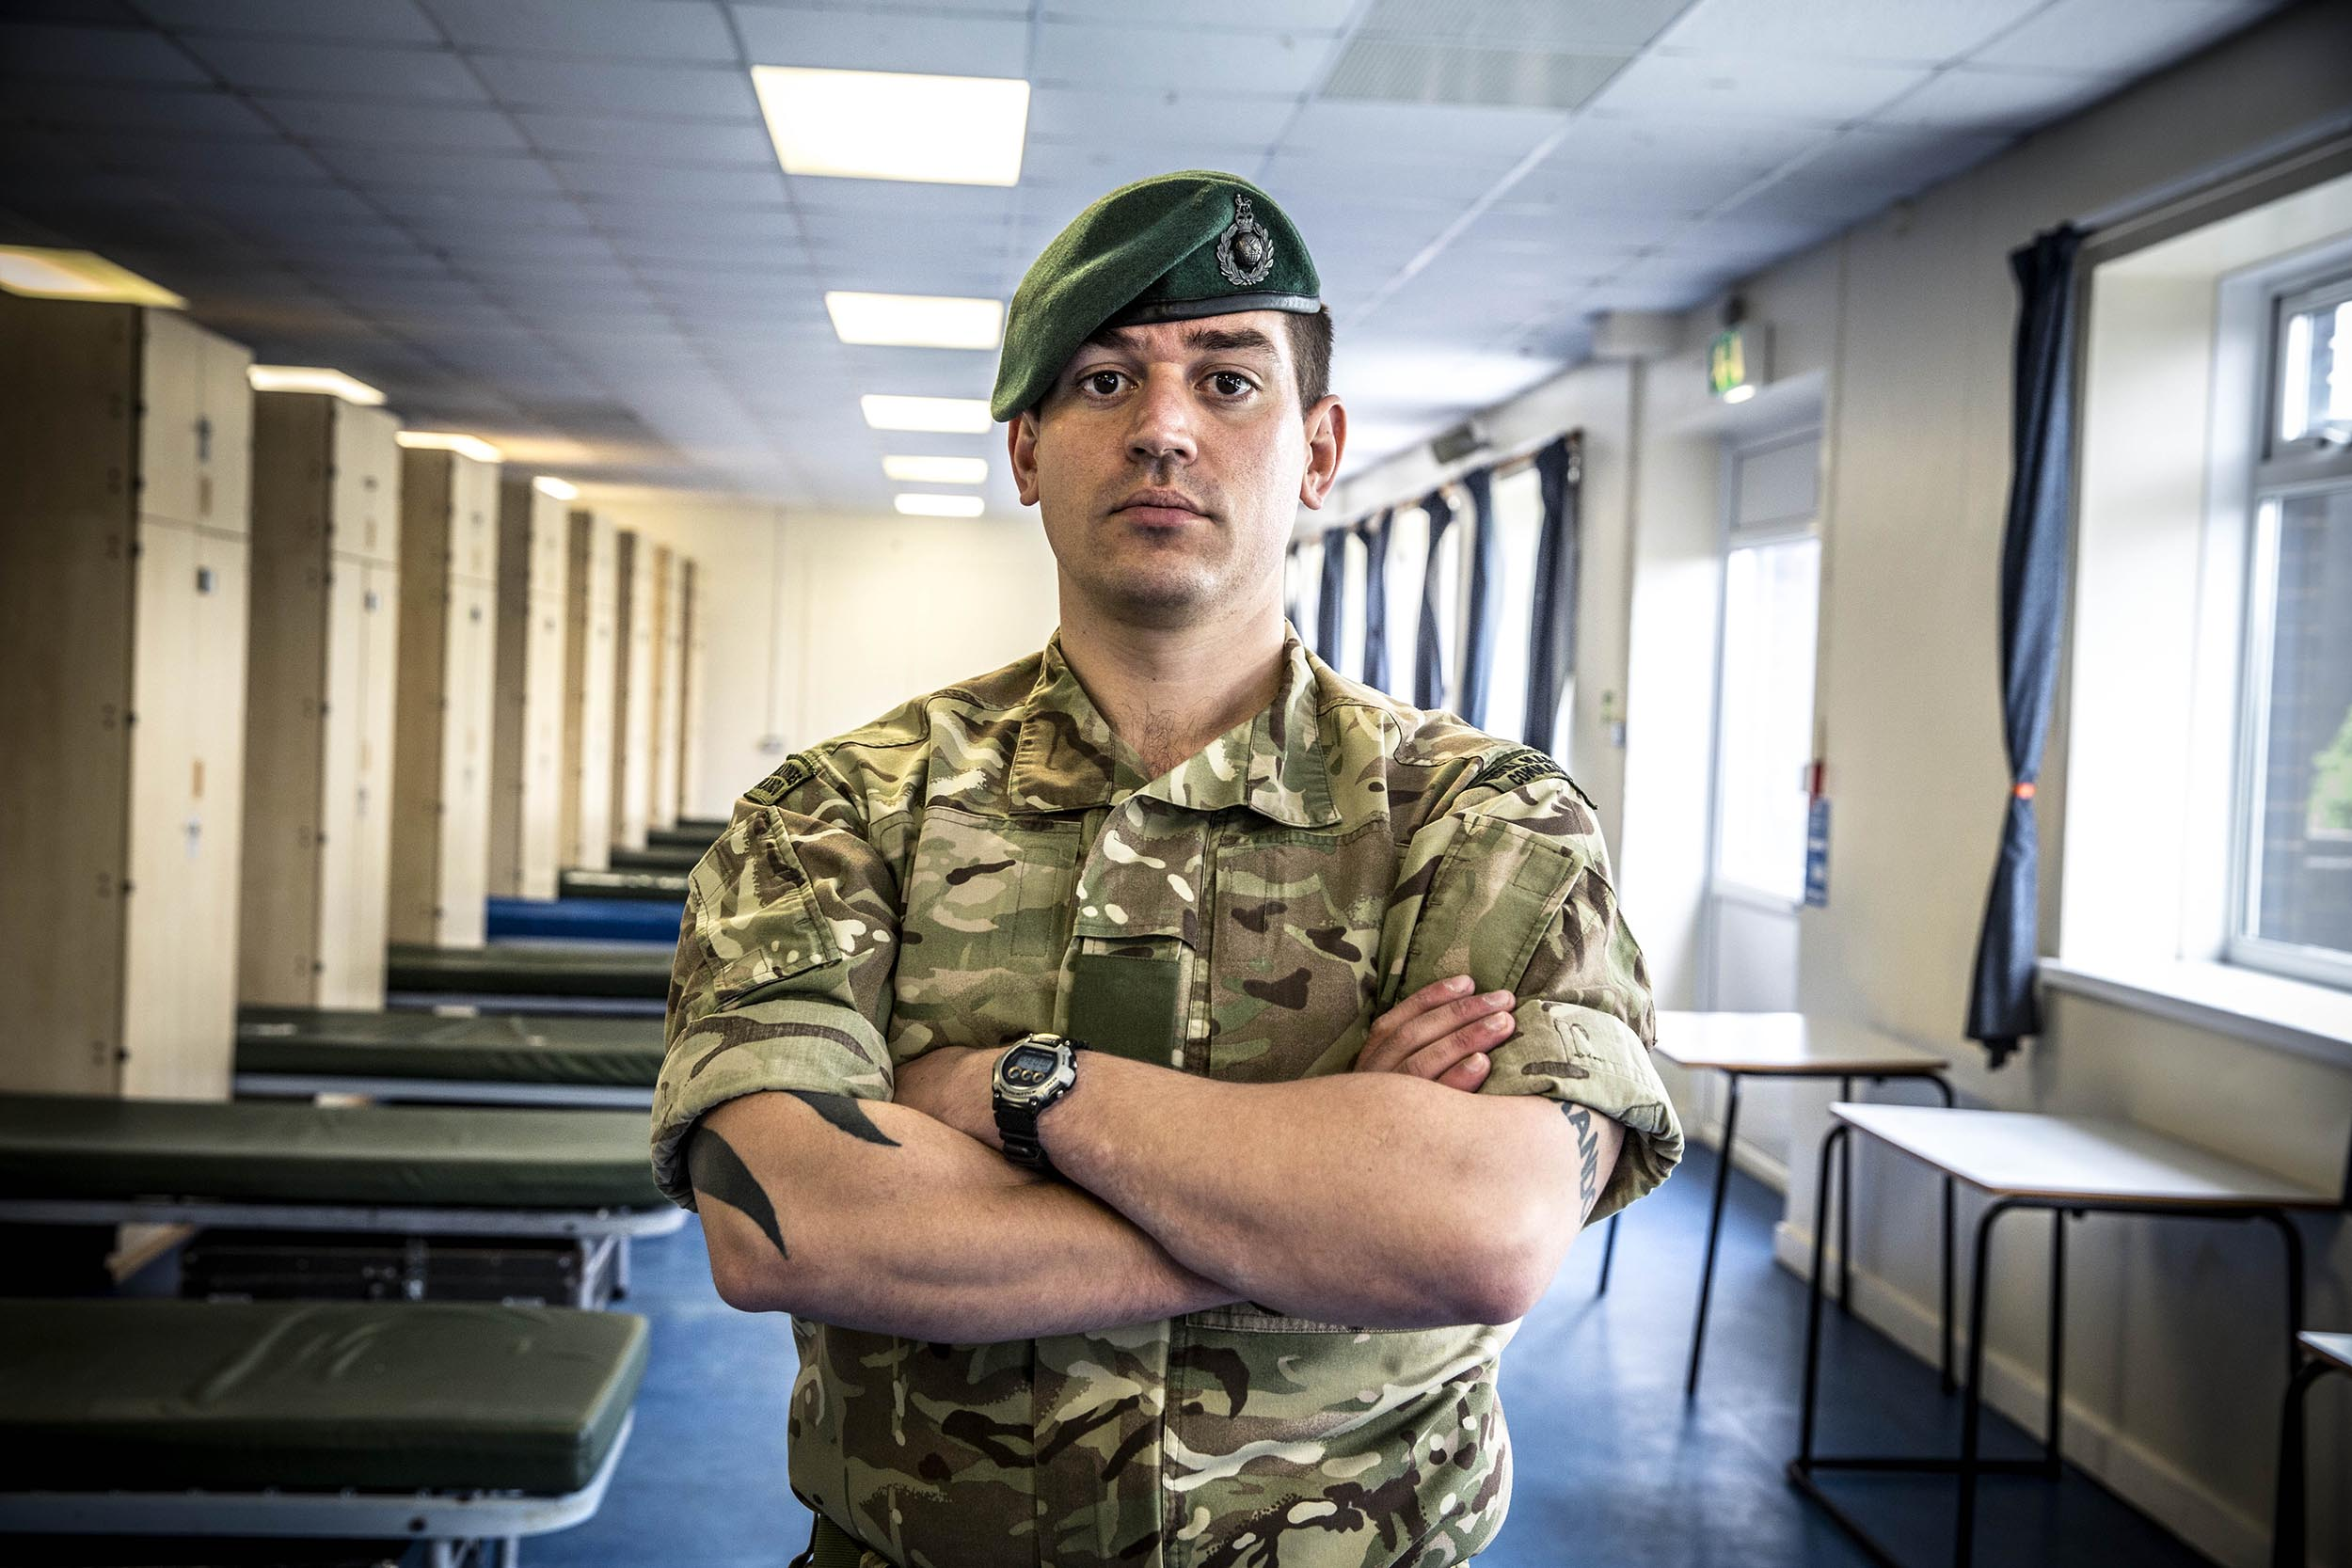 Royal Marines Commando School was compelling and taught us some interesting life lessons